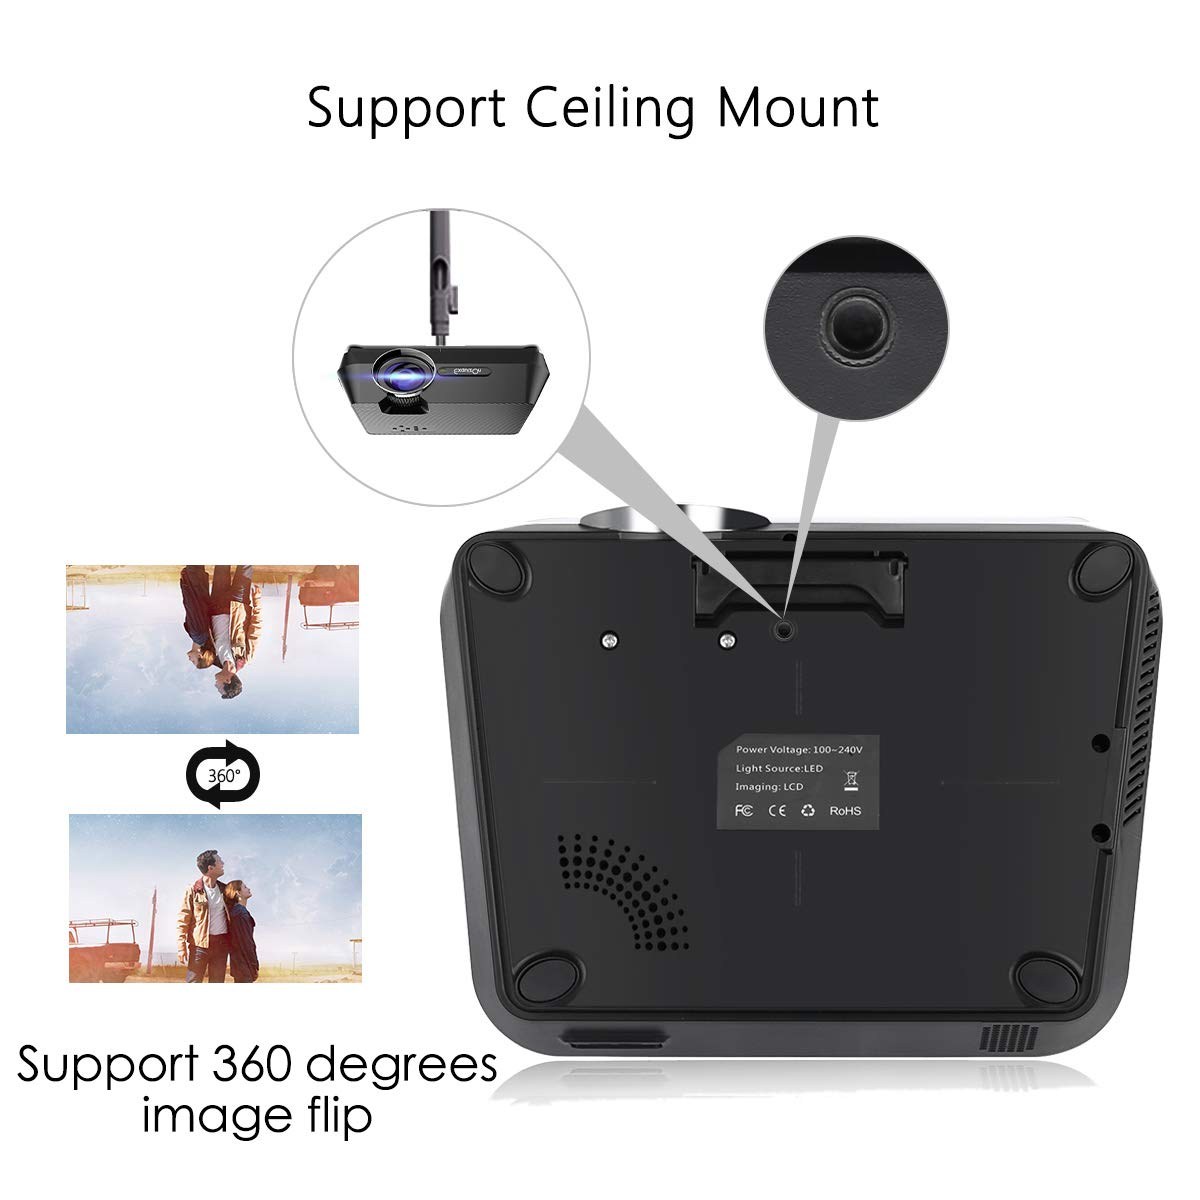 ExquizOn 2018 New Updated Mini Video Projector, 30% Lumens Brighter, New Smart Phone Mirror Function by Lighting or Micro USB Cable, 2200 Lumens Home Theater HDMI USB VGA AV TF (Gt-S9)